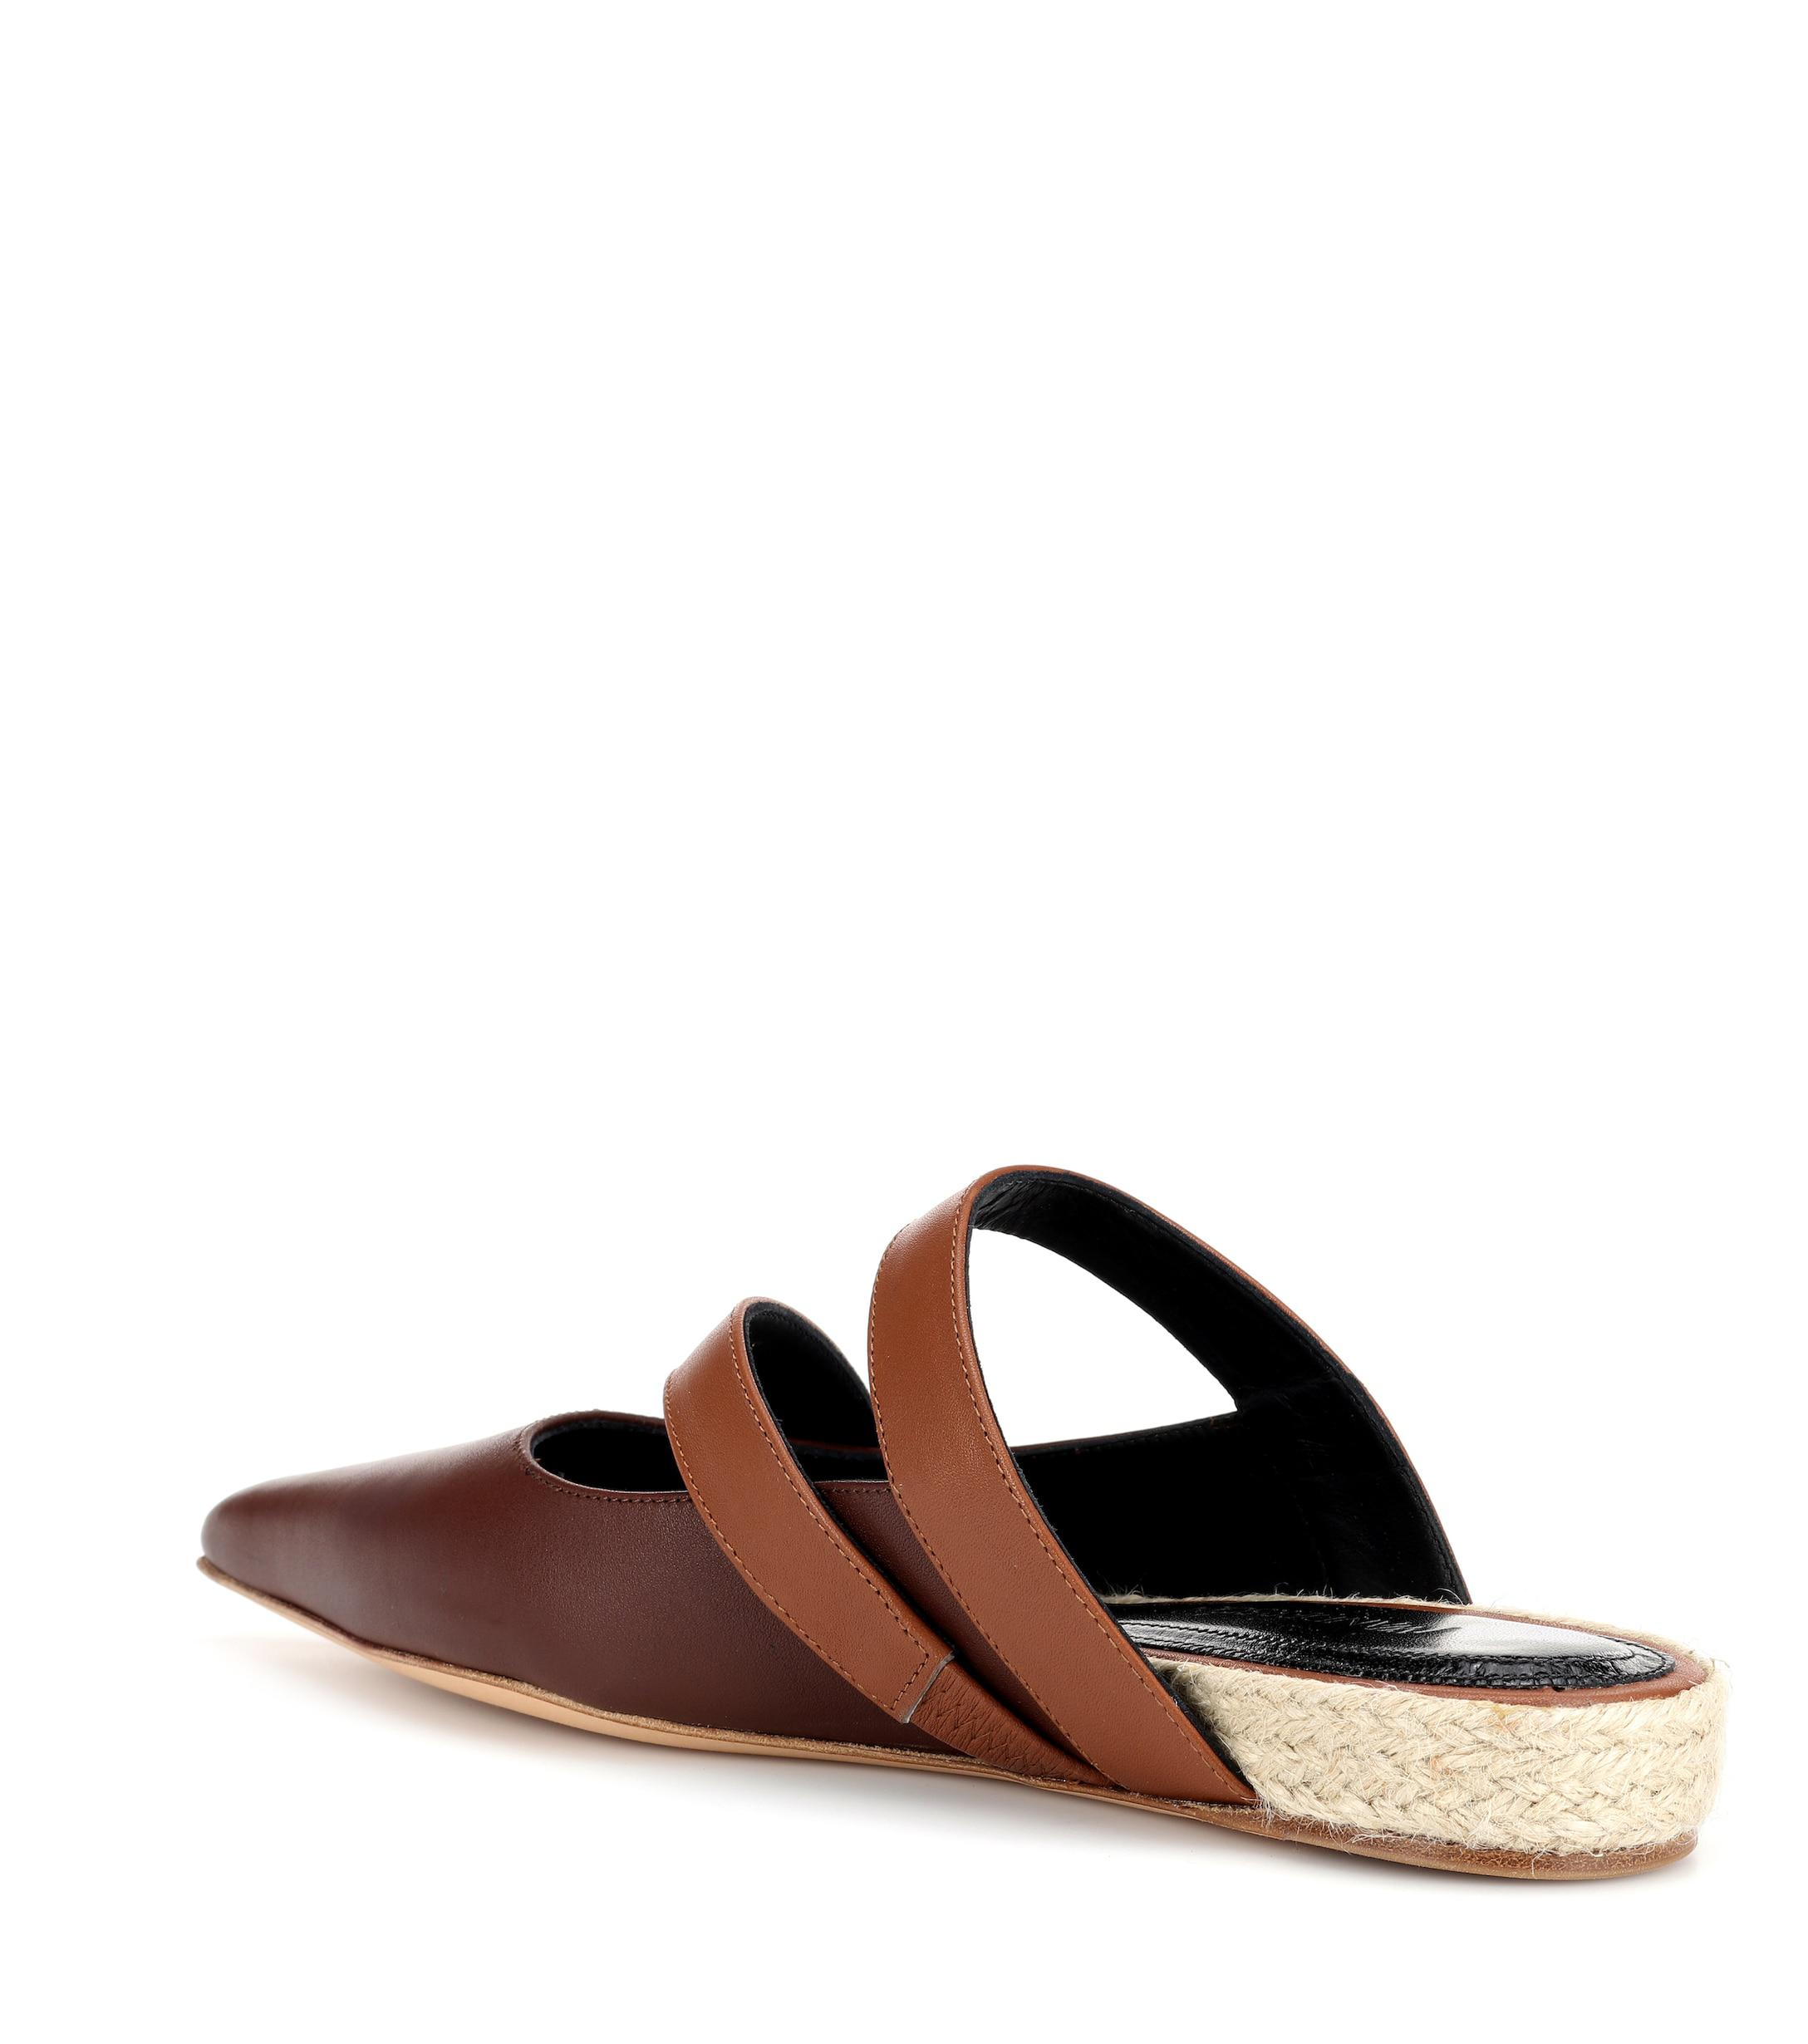 31a0d527c J.W. Anderson - Brown Leather Slipper - Lyst. View fullscreen